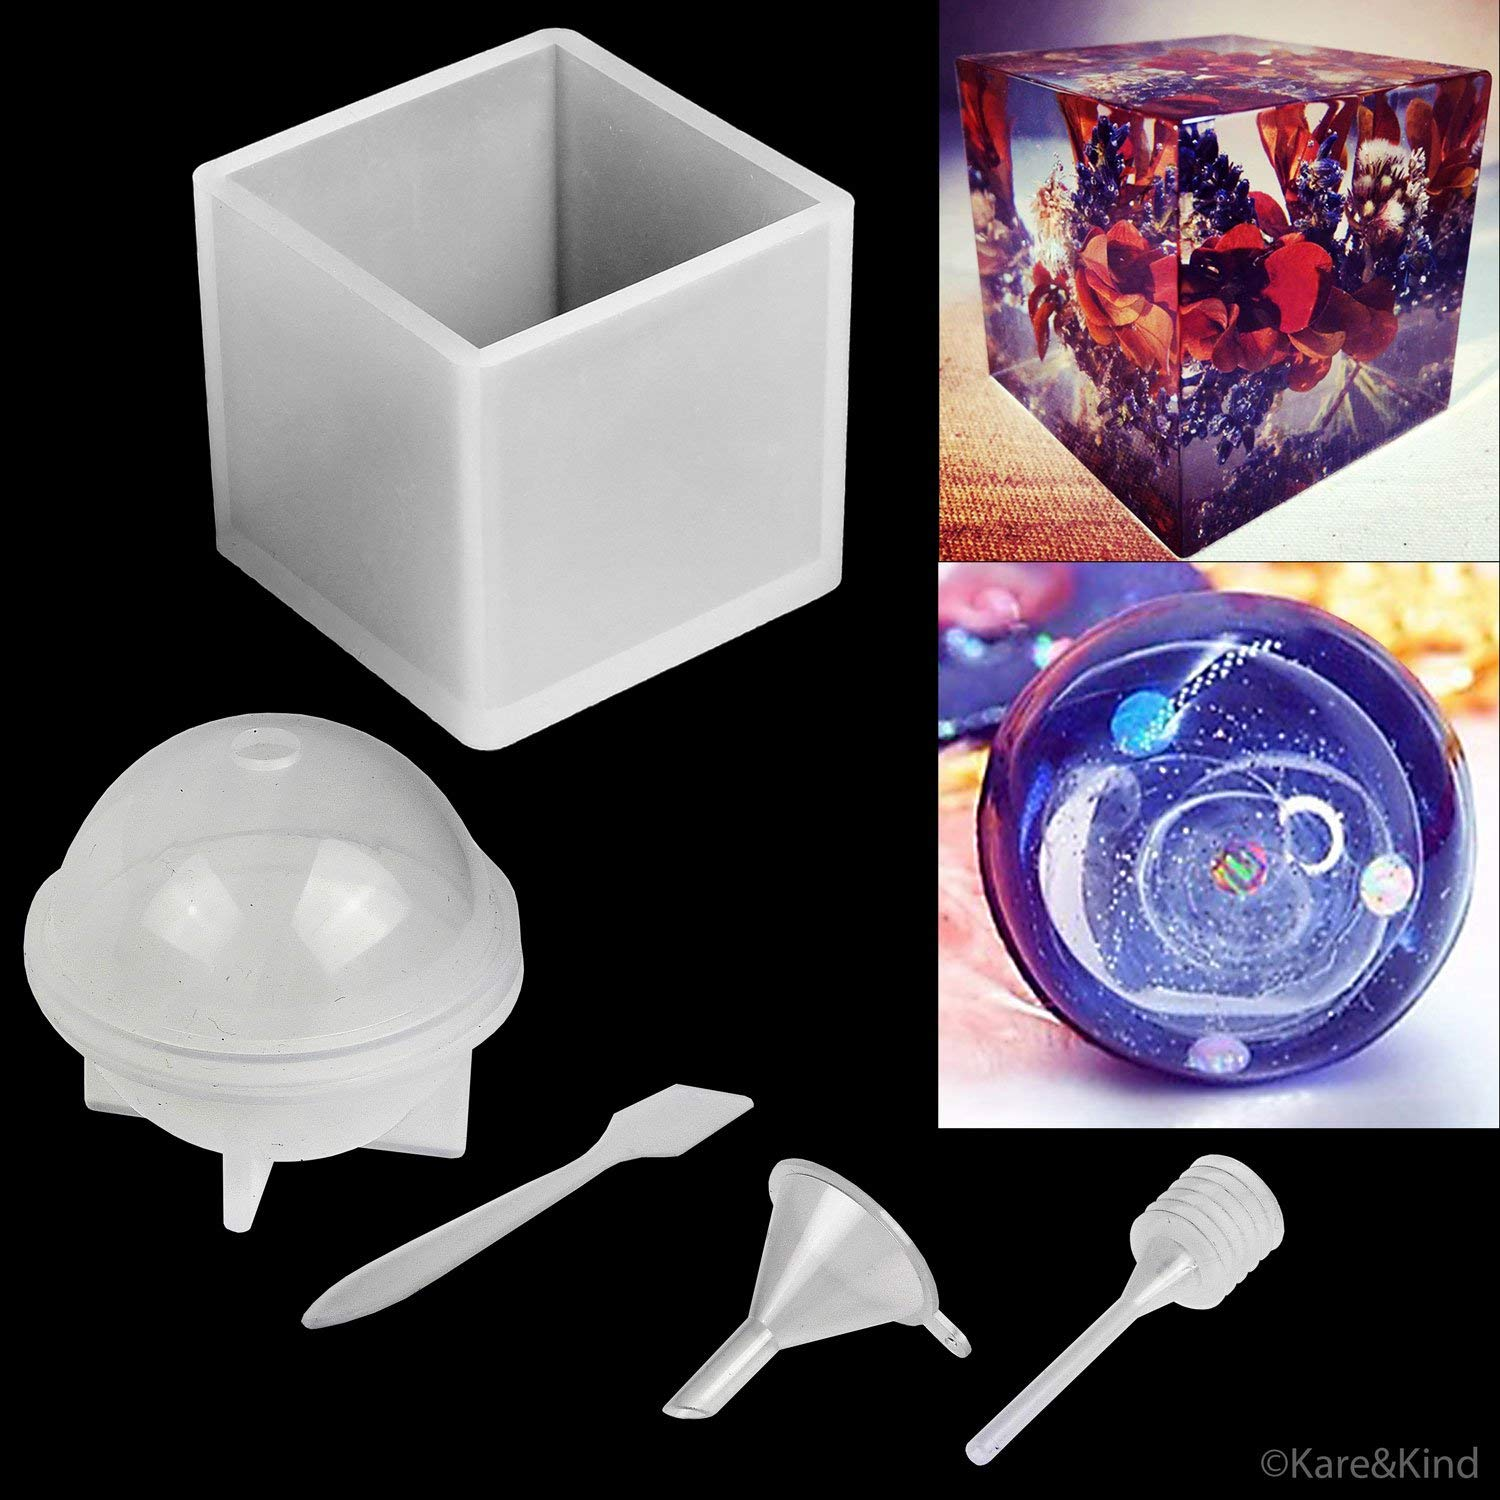 Polymer Clay / Resin Epoxy Molds - Set of 2 Silicone Shapes - Cube / Sphere - Create Your Own Clear or Opaque Objects - Easy to Remove After Molding - Soft, Durable, Reusable - Jewelry, Candles, Soap